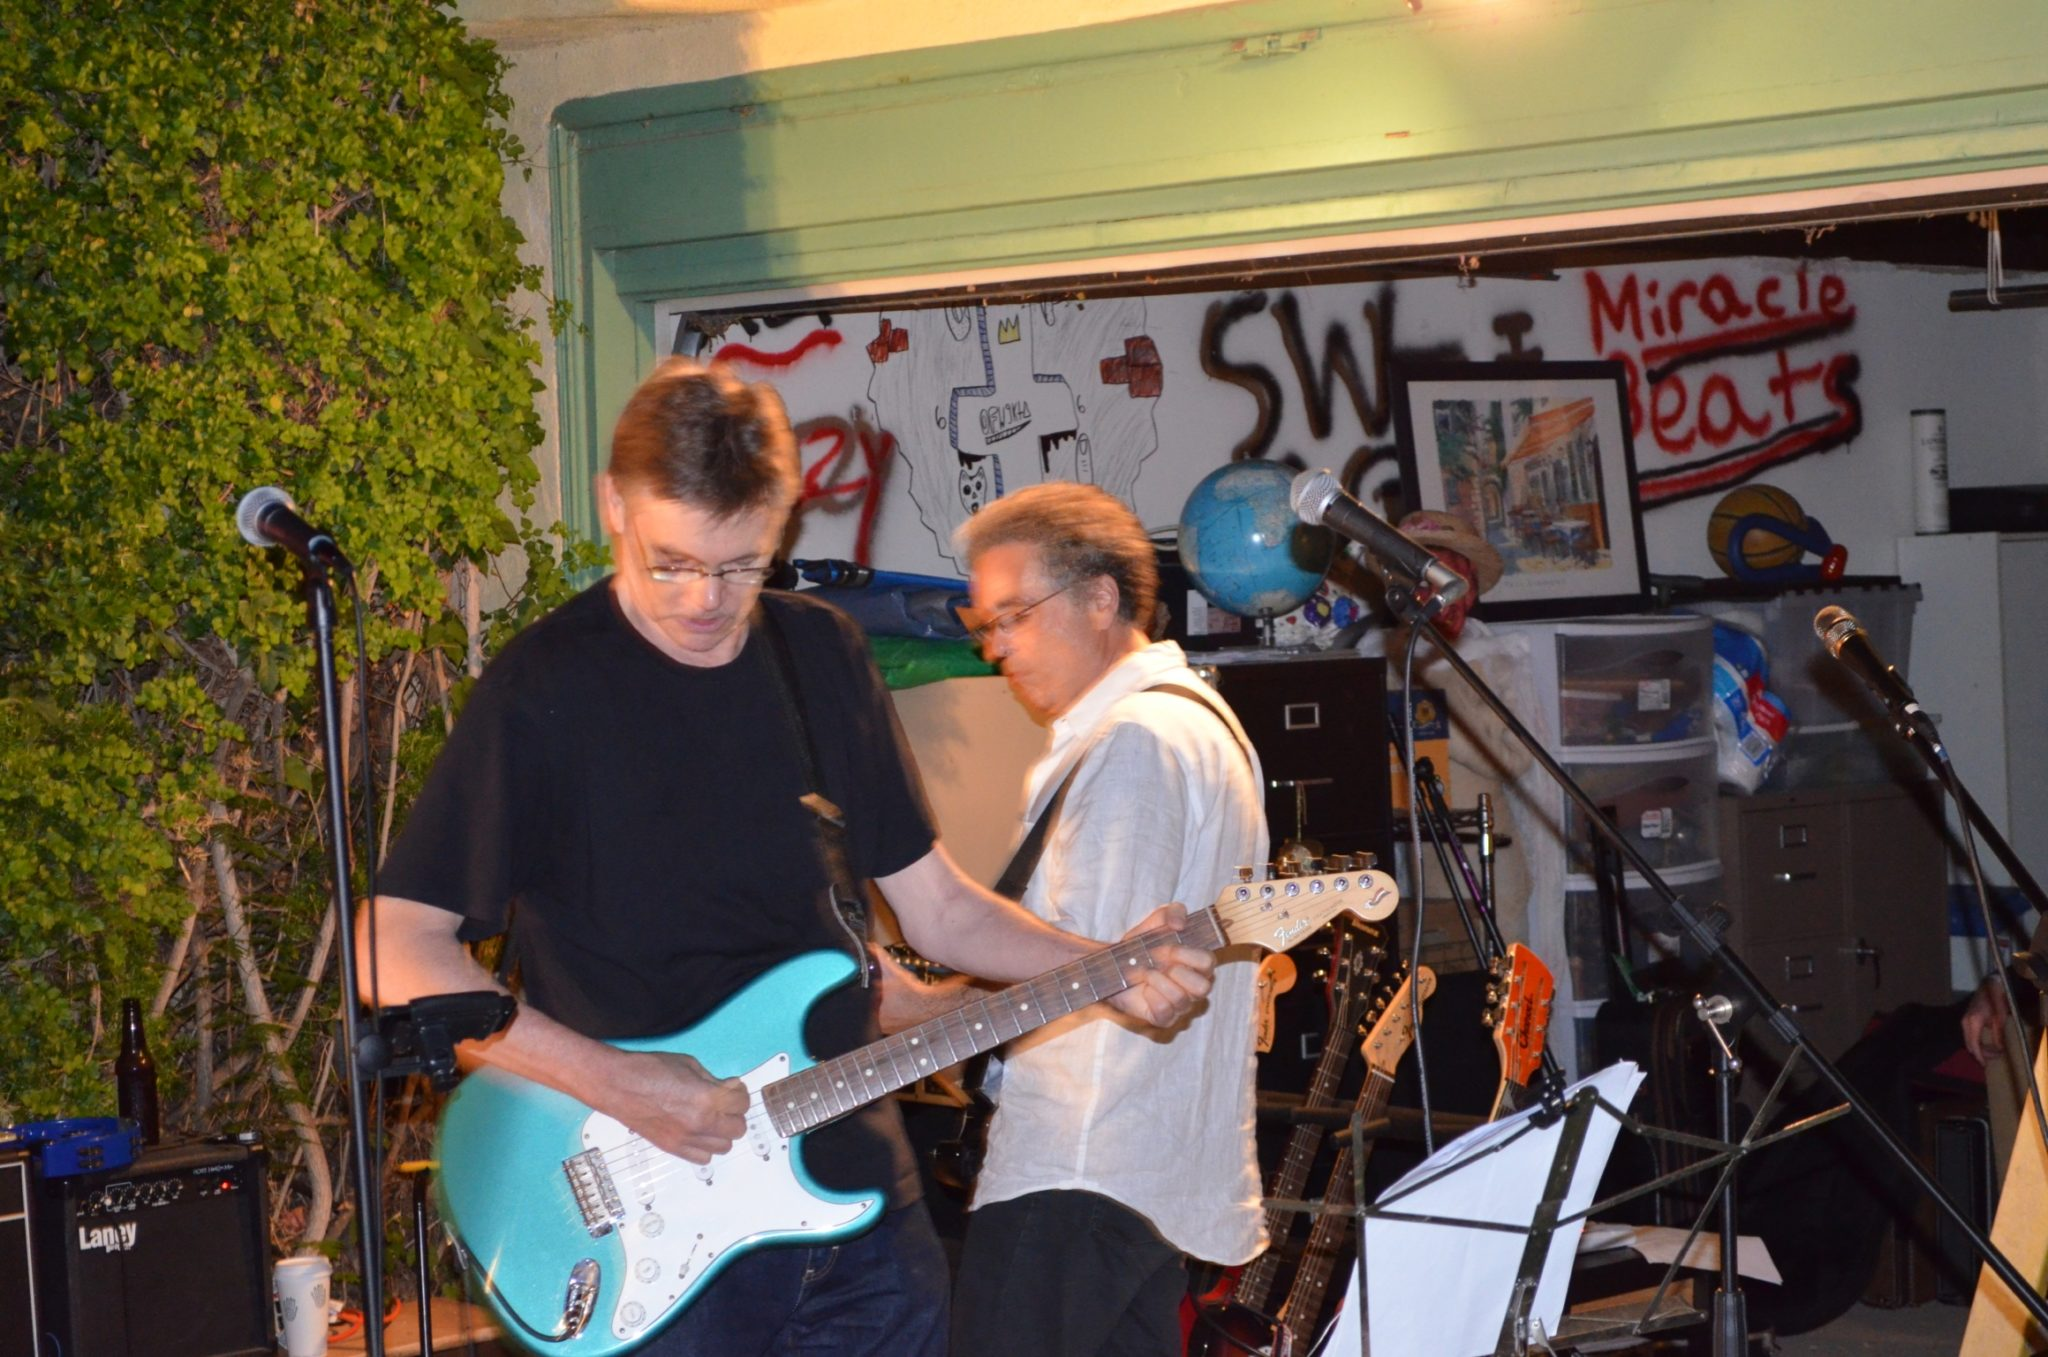 The Innocent Bystanders play a live music at a backyard party in San Diego.